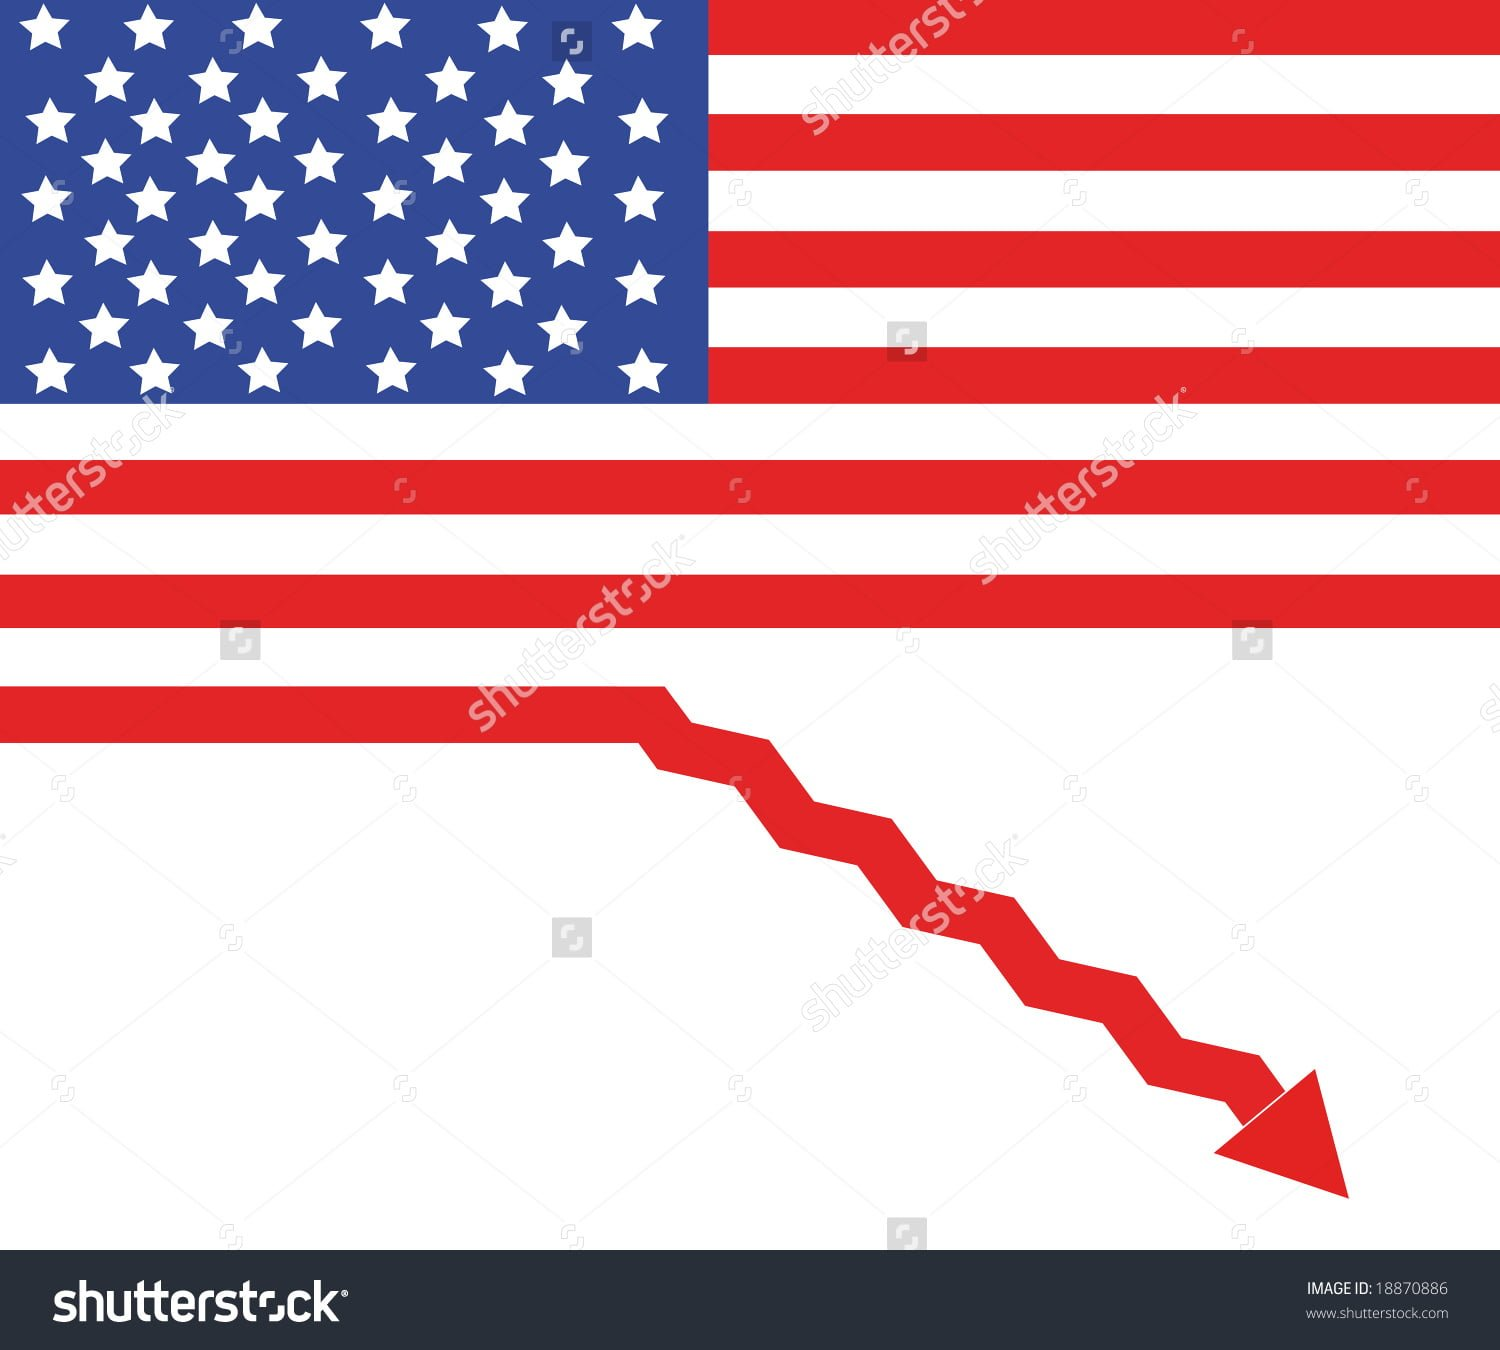 stock-photo-usa-flag-as-a-sign-of-recession-18870886